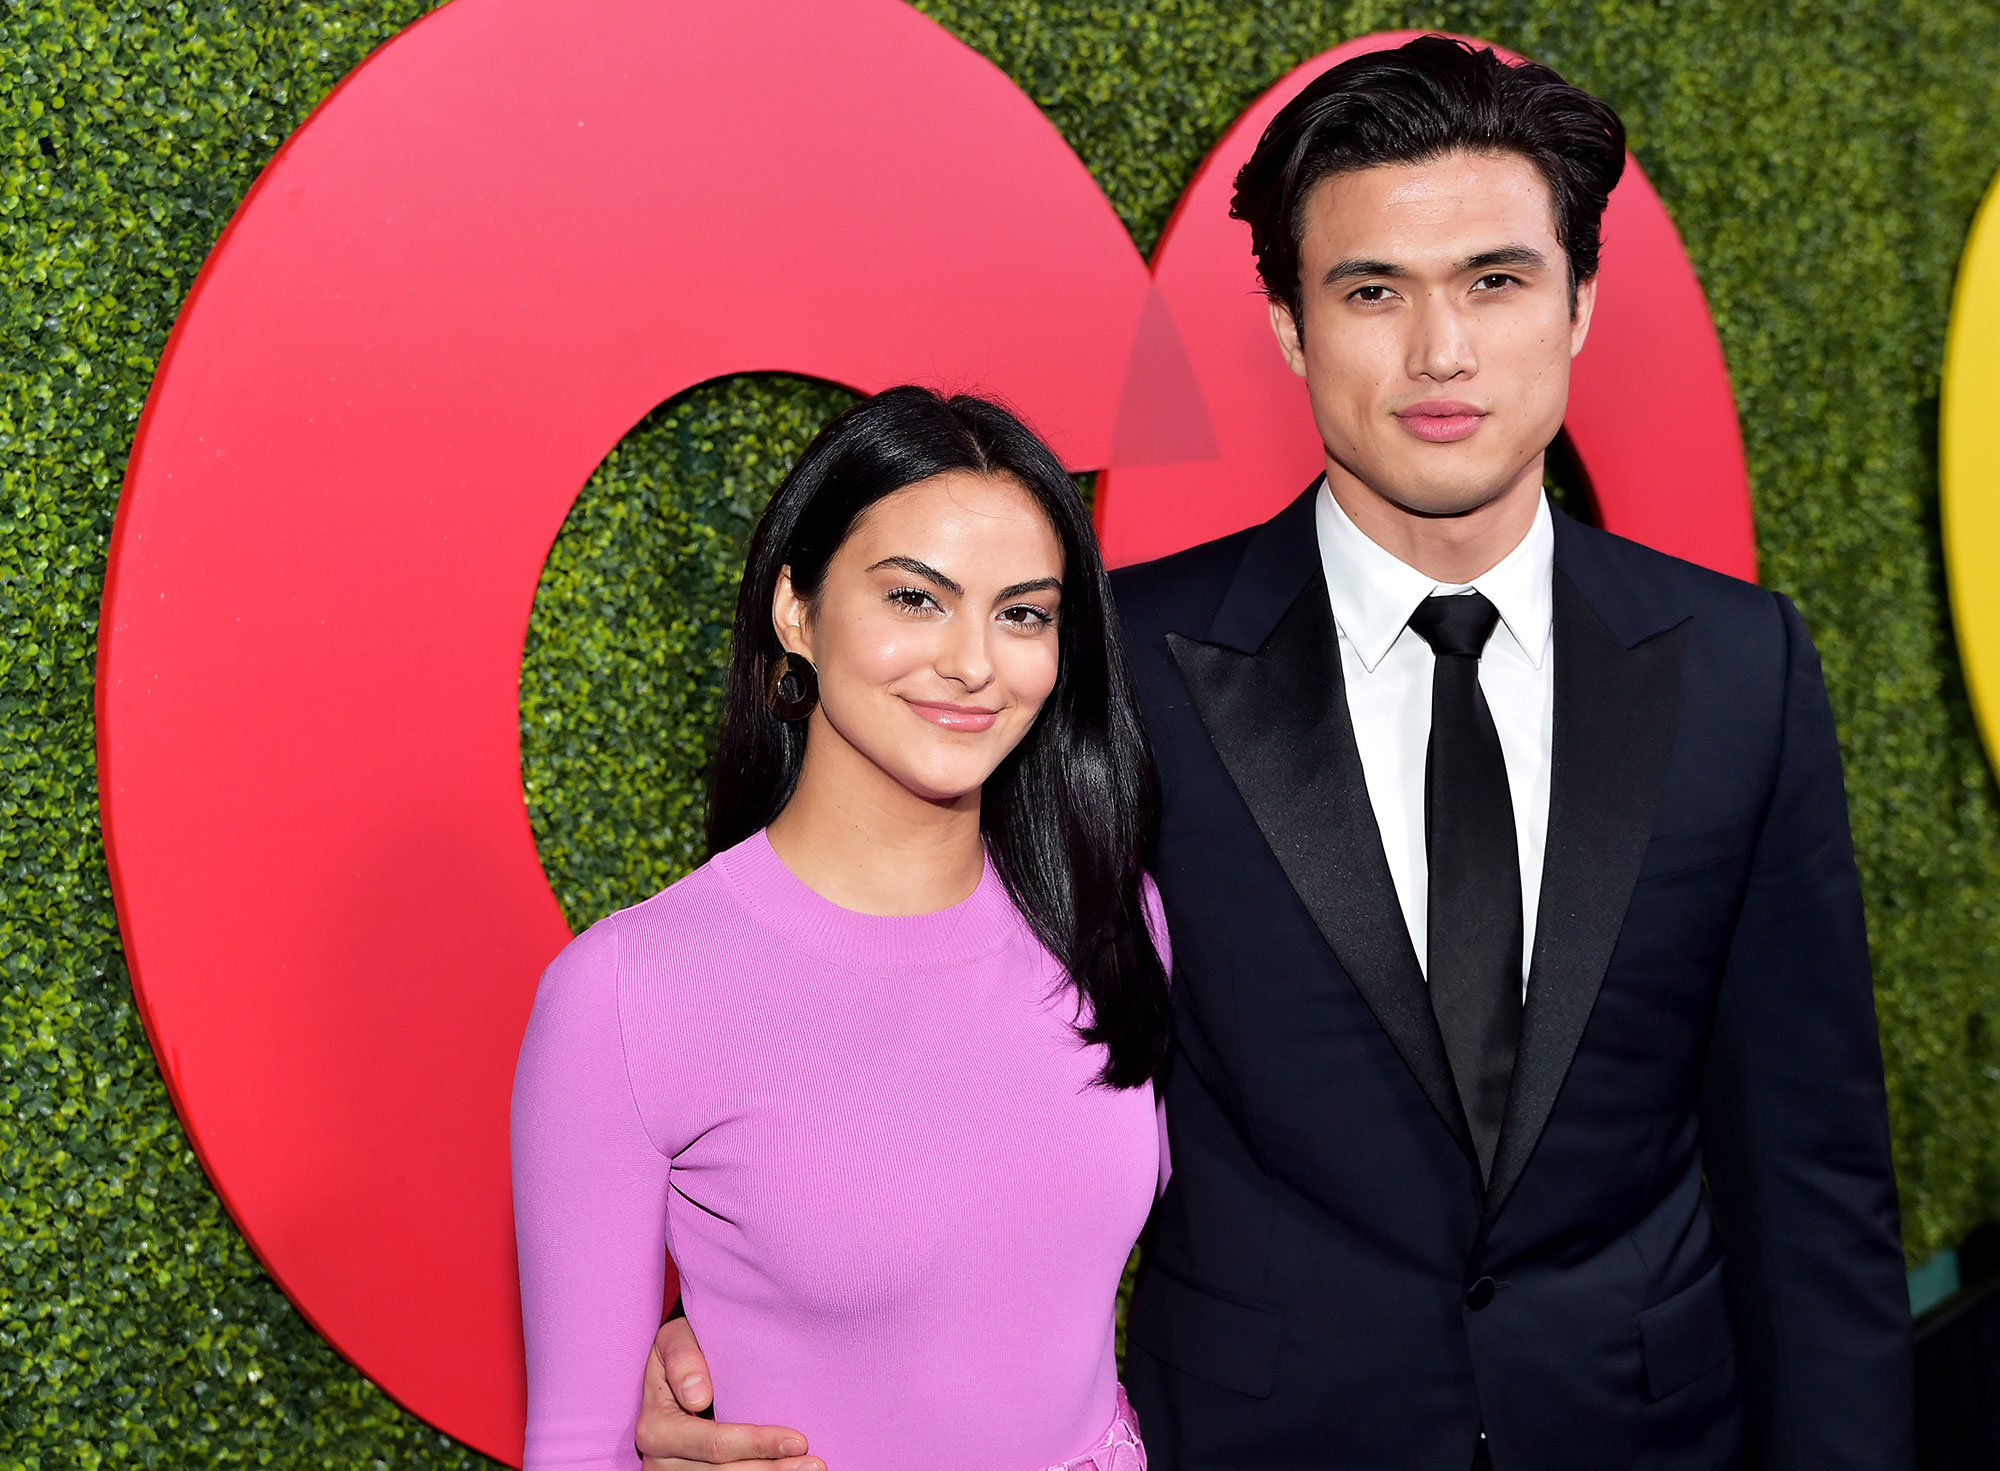 Celebrity Couples of 2018 Camila Mendes and Charles Melton - Riverdale fans were shocked to learn that Lili Reinhart and Cole Sprouse weren't the only real-life couple on the set of the CW hit. Mendes and Melton confirmed their relationship via Instagram in October.